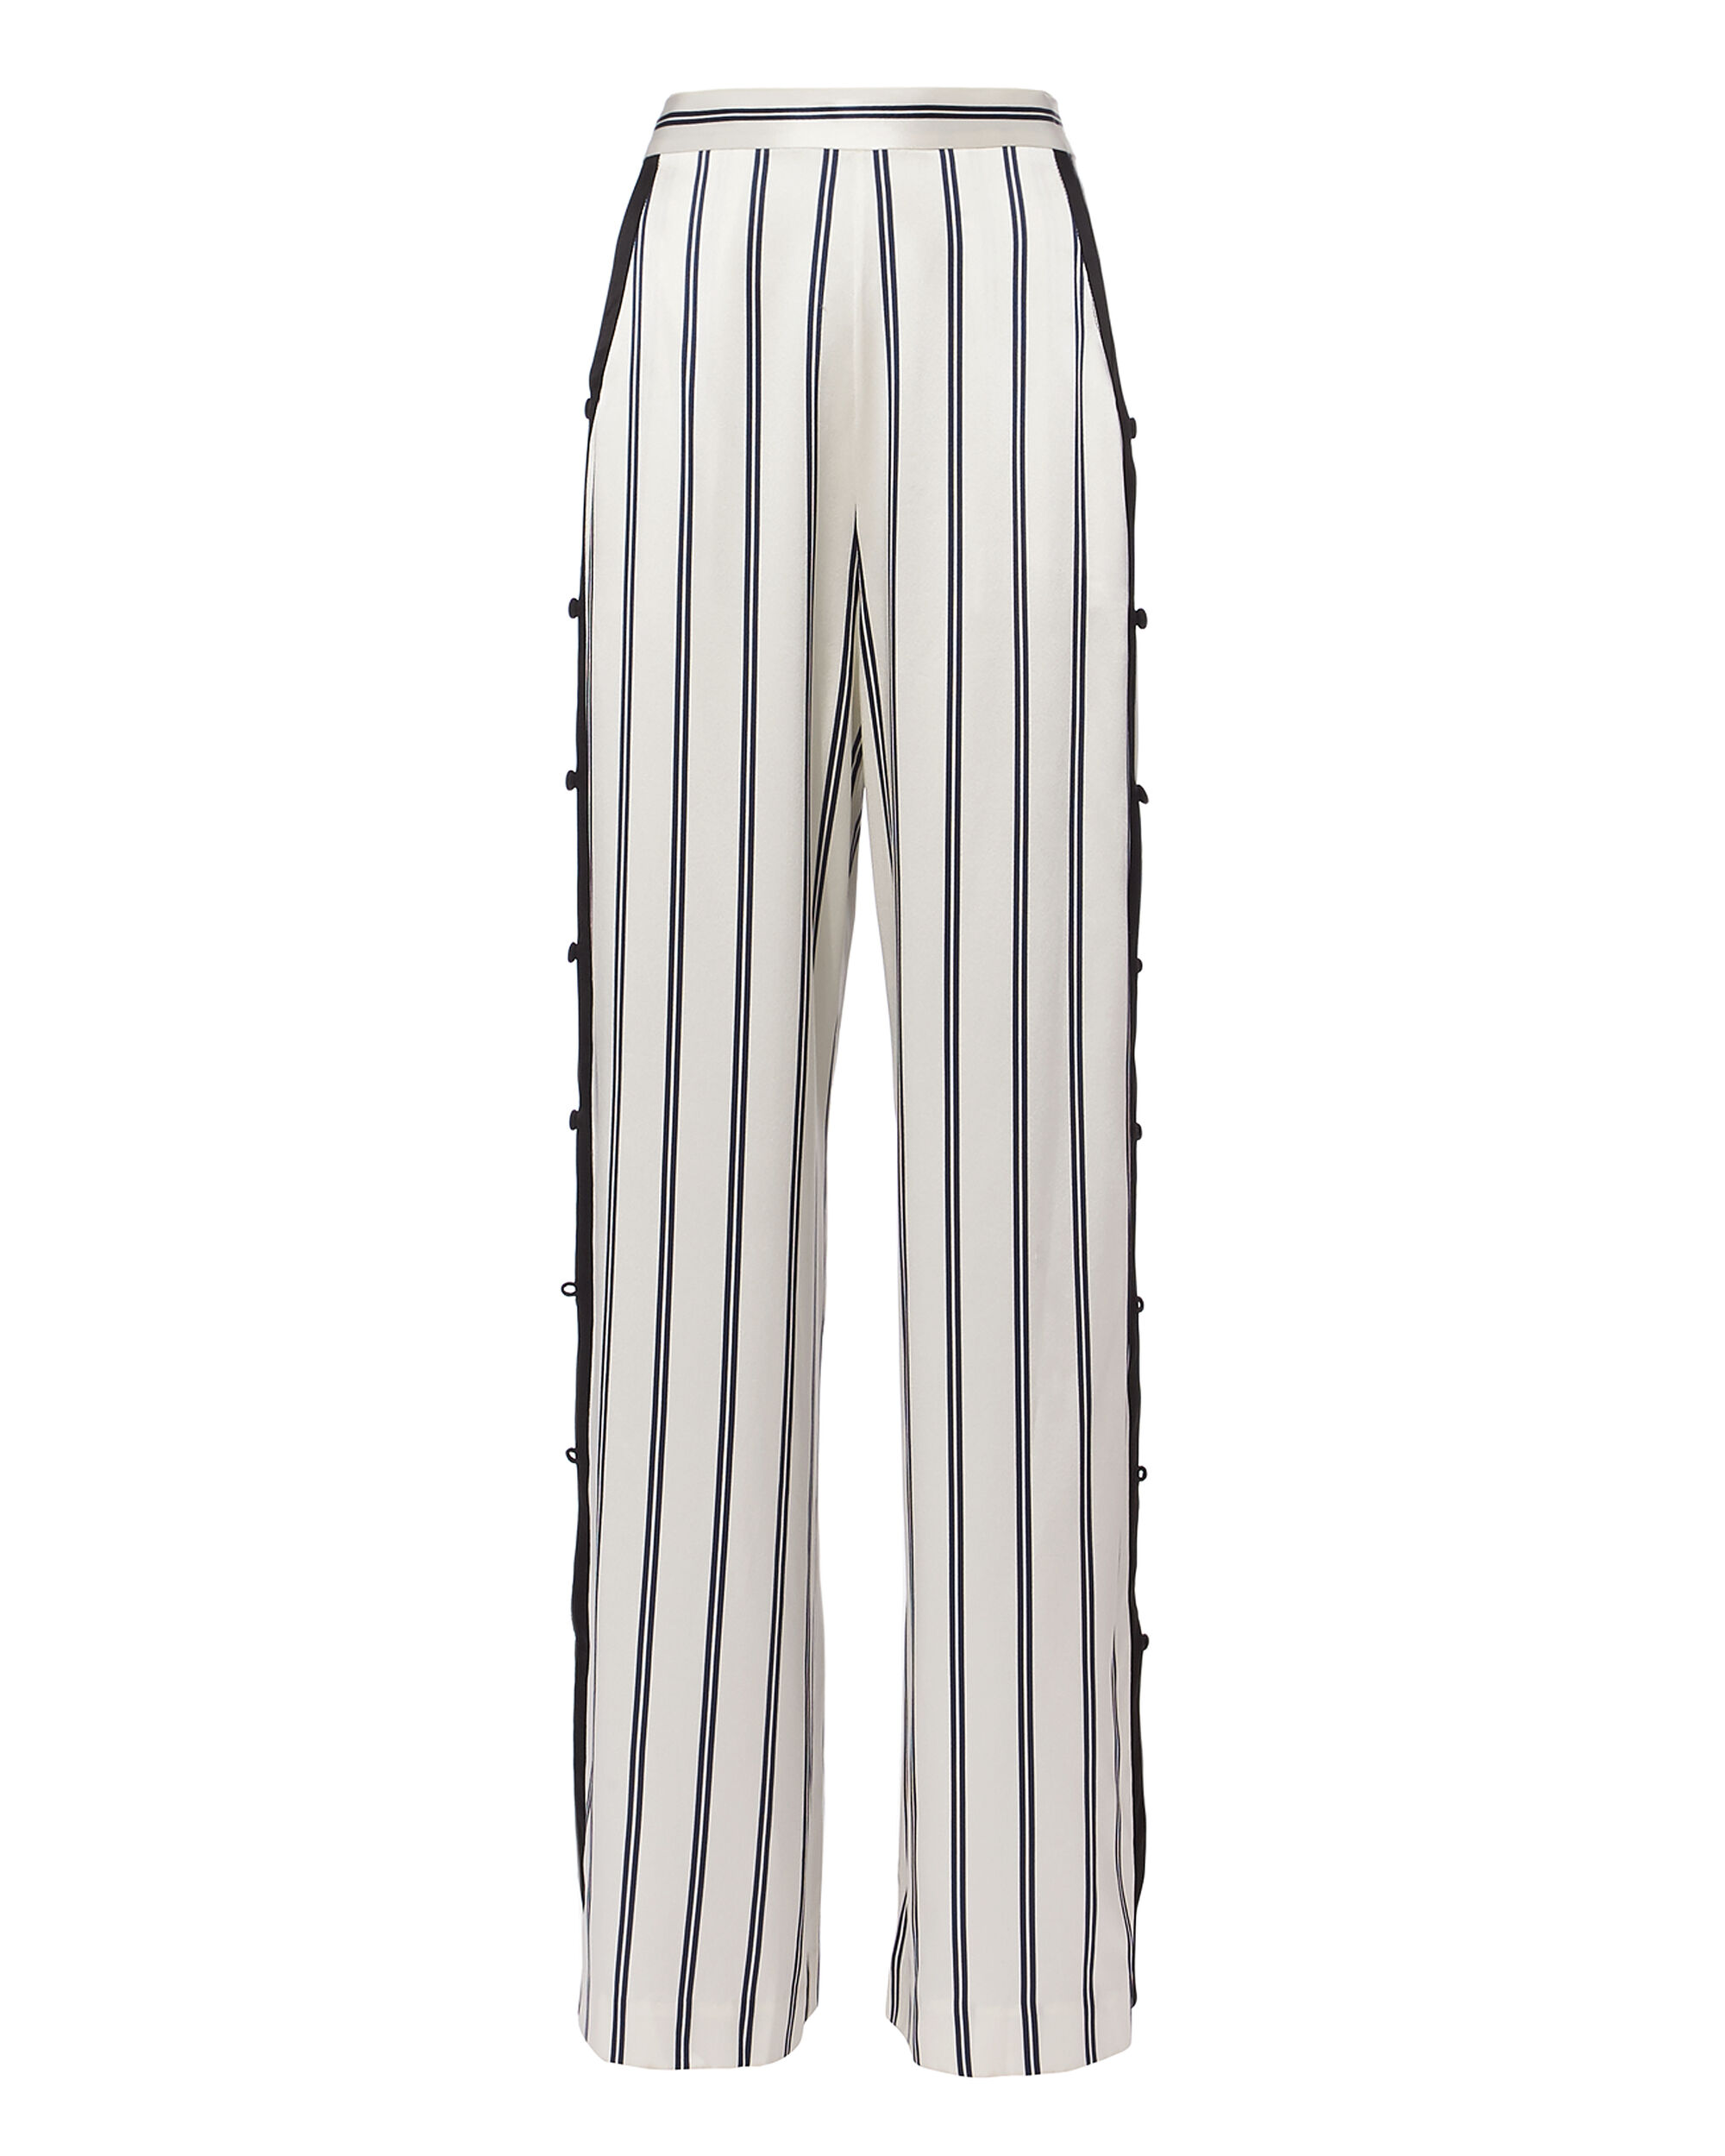 FLEUR DU MAL Striped Silk-Charmeuse Wide-Leg Pants in Black